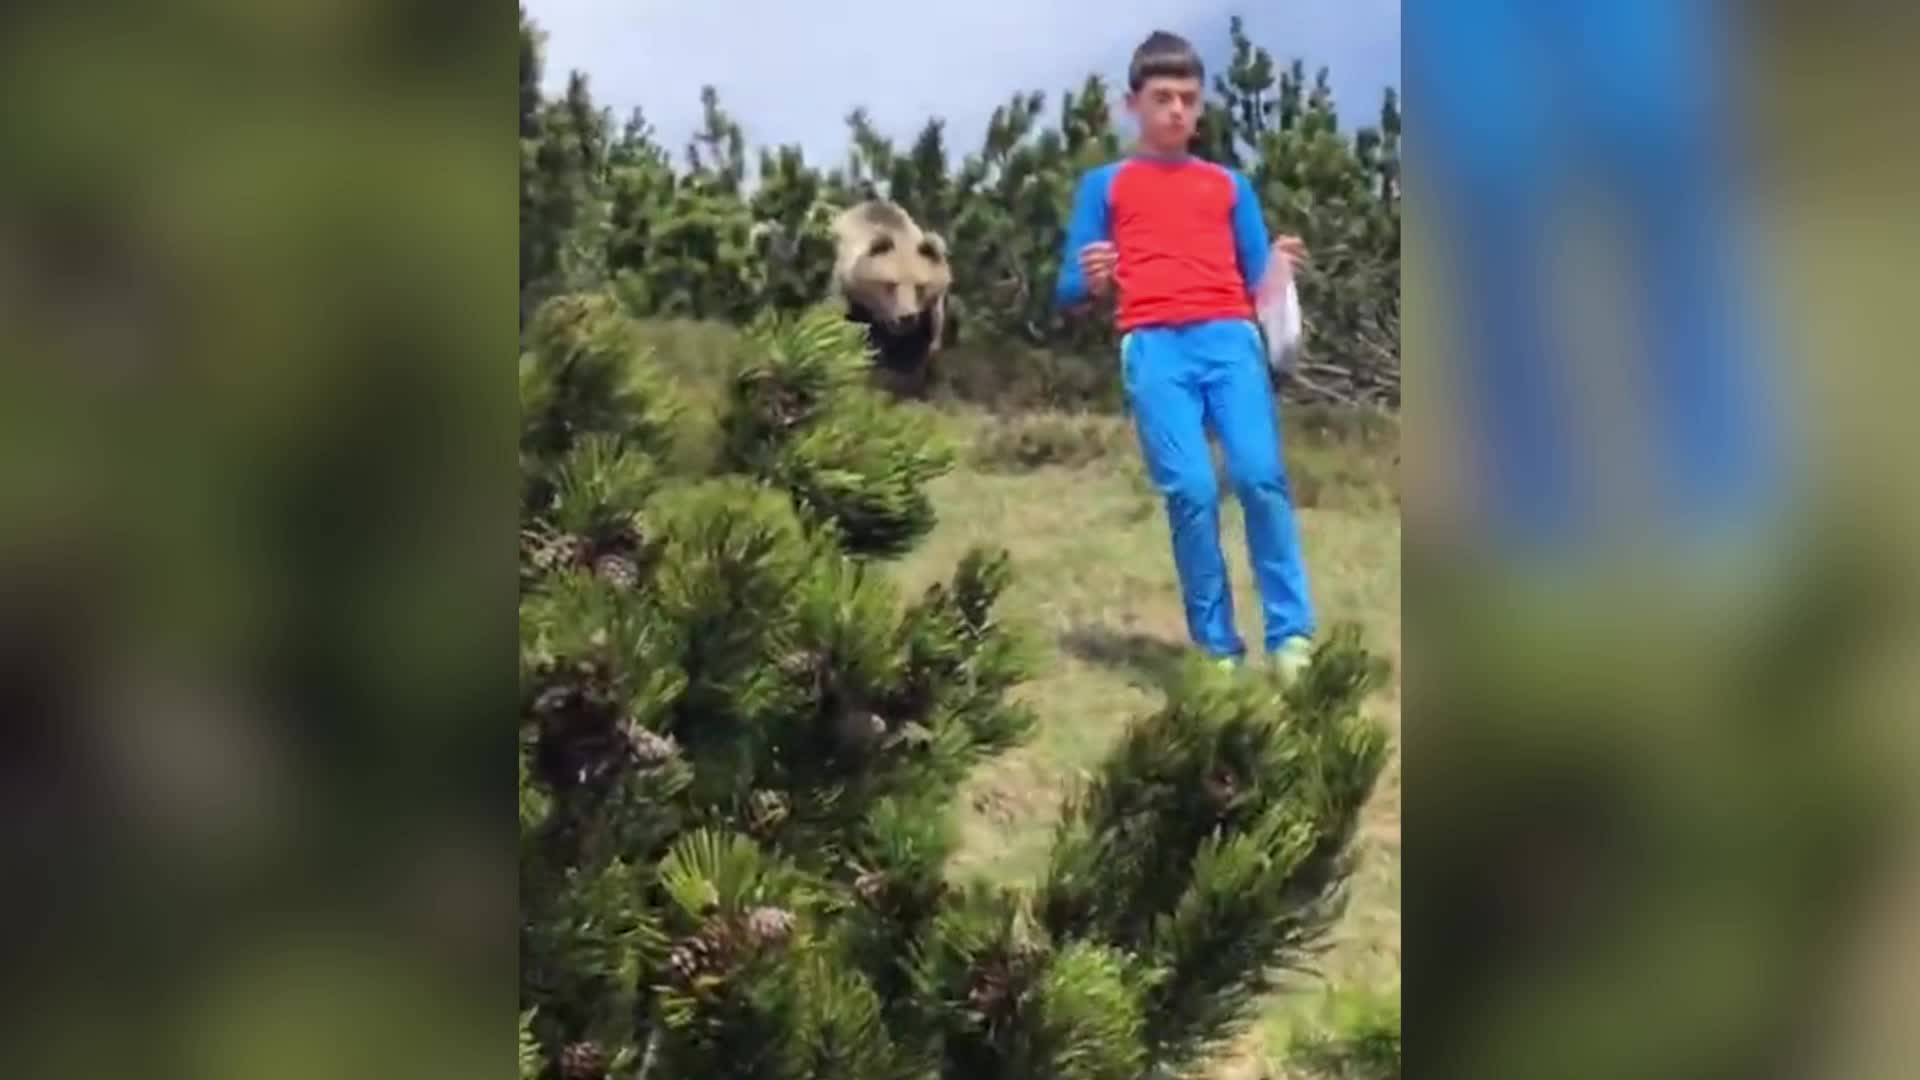 12-Year-Old Boy Keeps Calm to Safely Escape Bear Attack